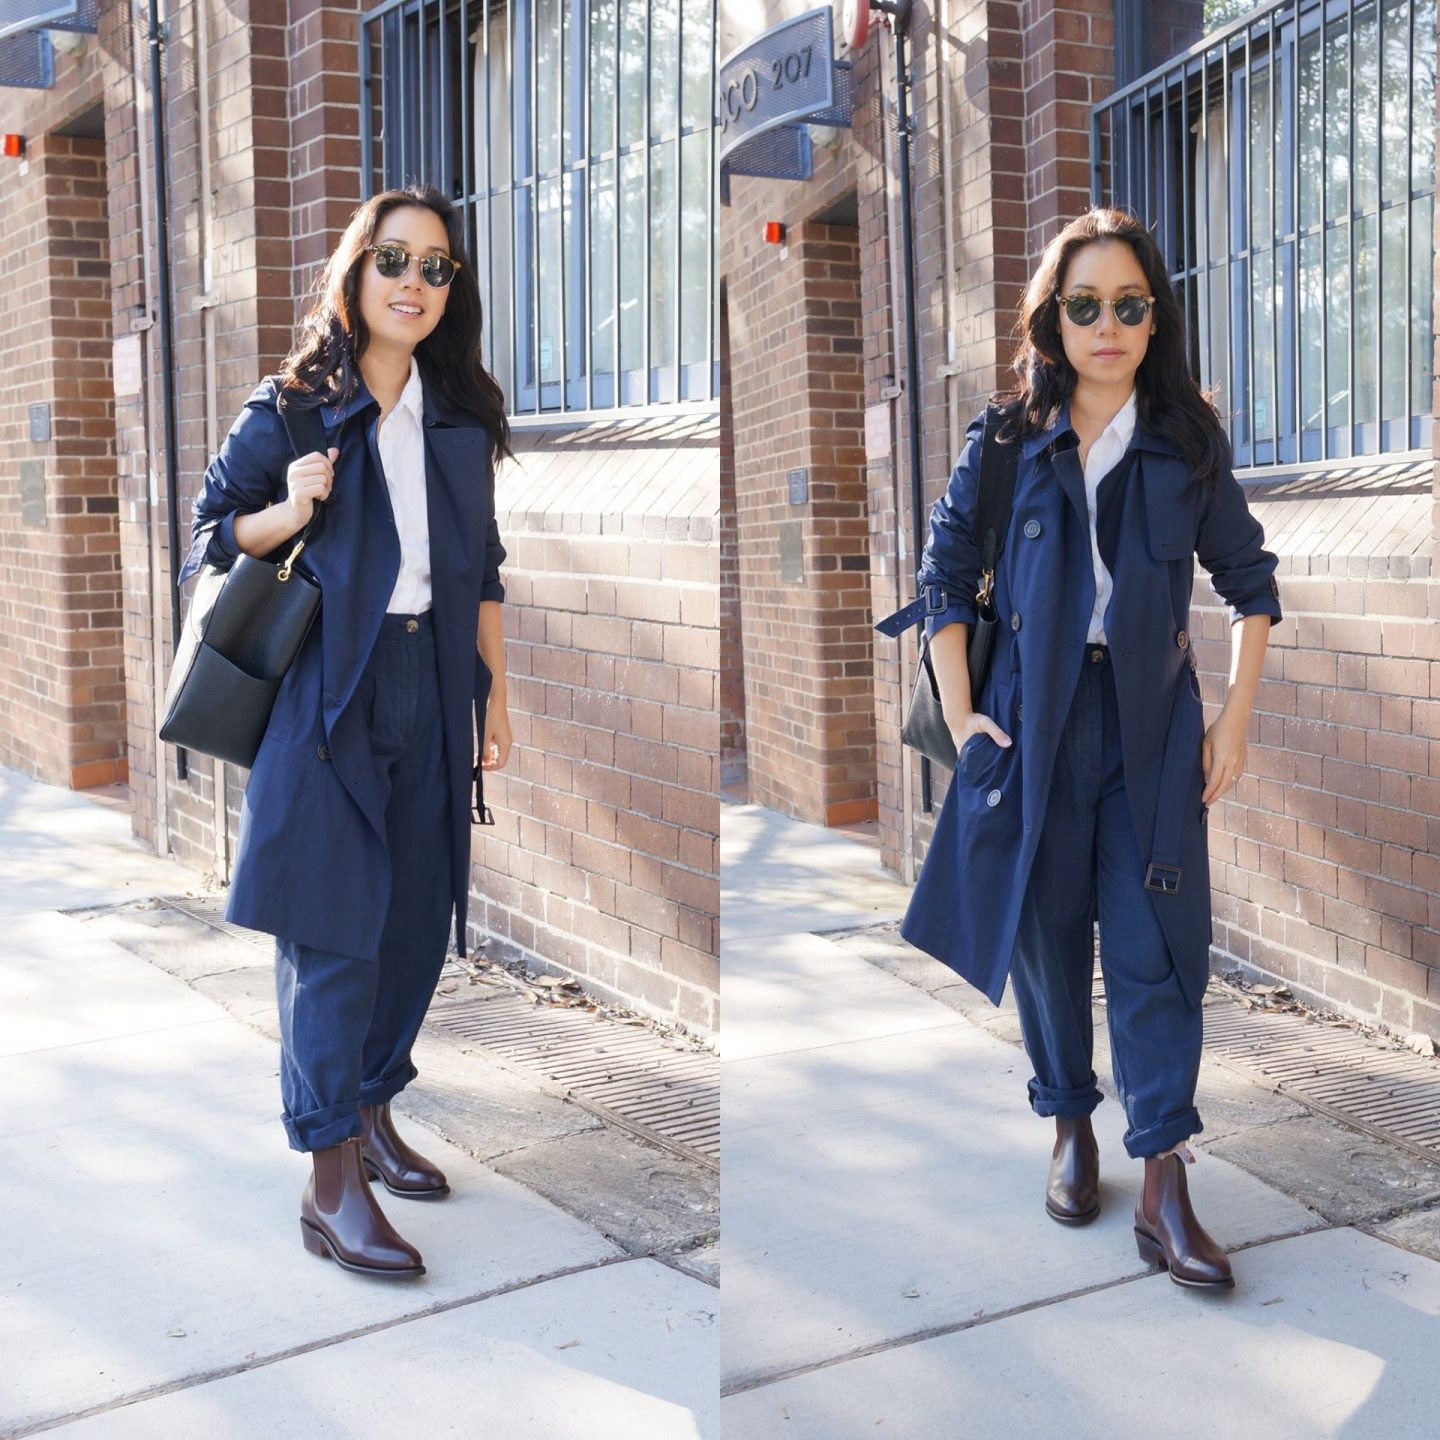 asian workwear blogger wearing r.m. williams lady yearling boots with marks & spencer trench in post about autumn sale